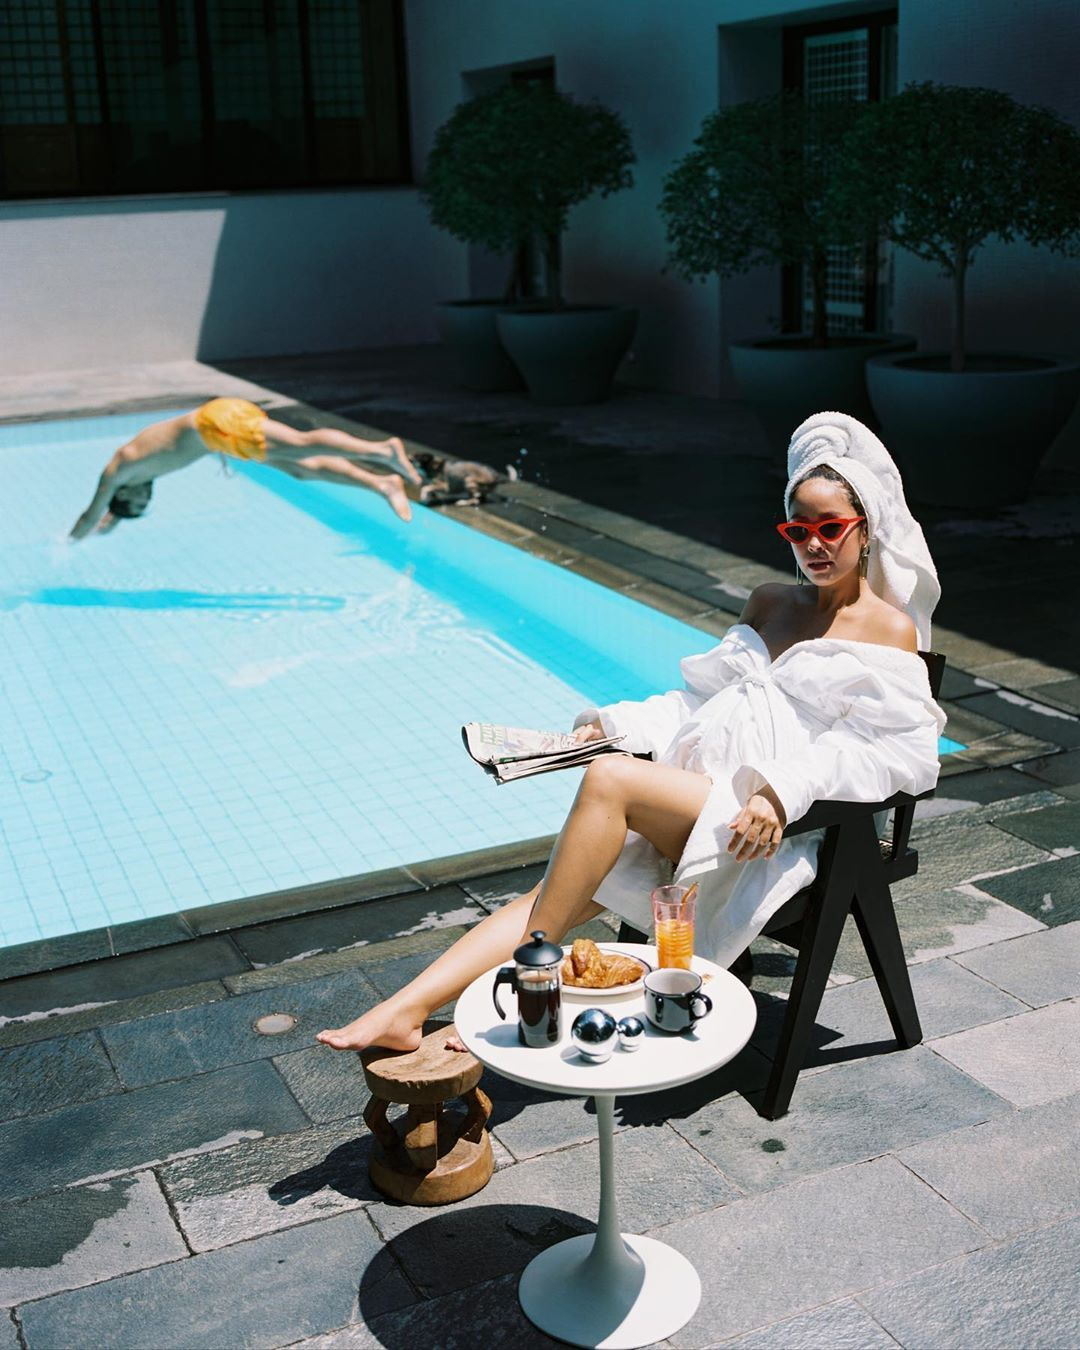 Best Tatlergrams Of The Week: Chilling By The Pool And Family Time